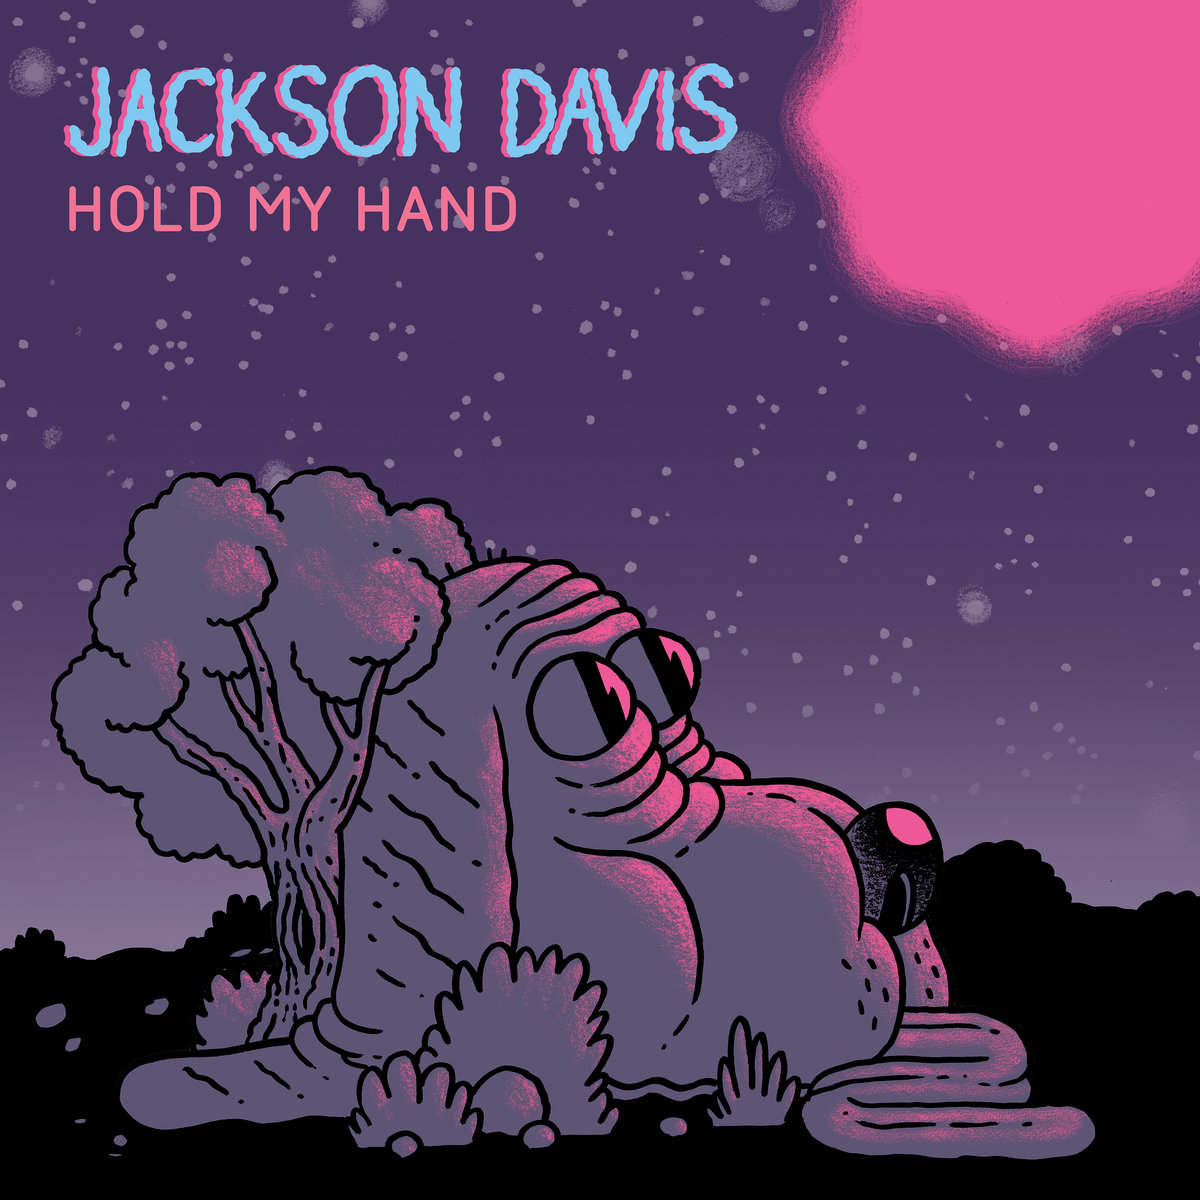 Hold My Hand by Jackson Davis